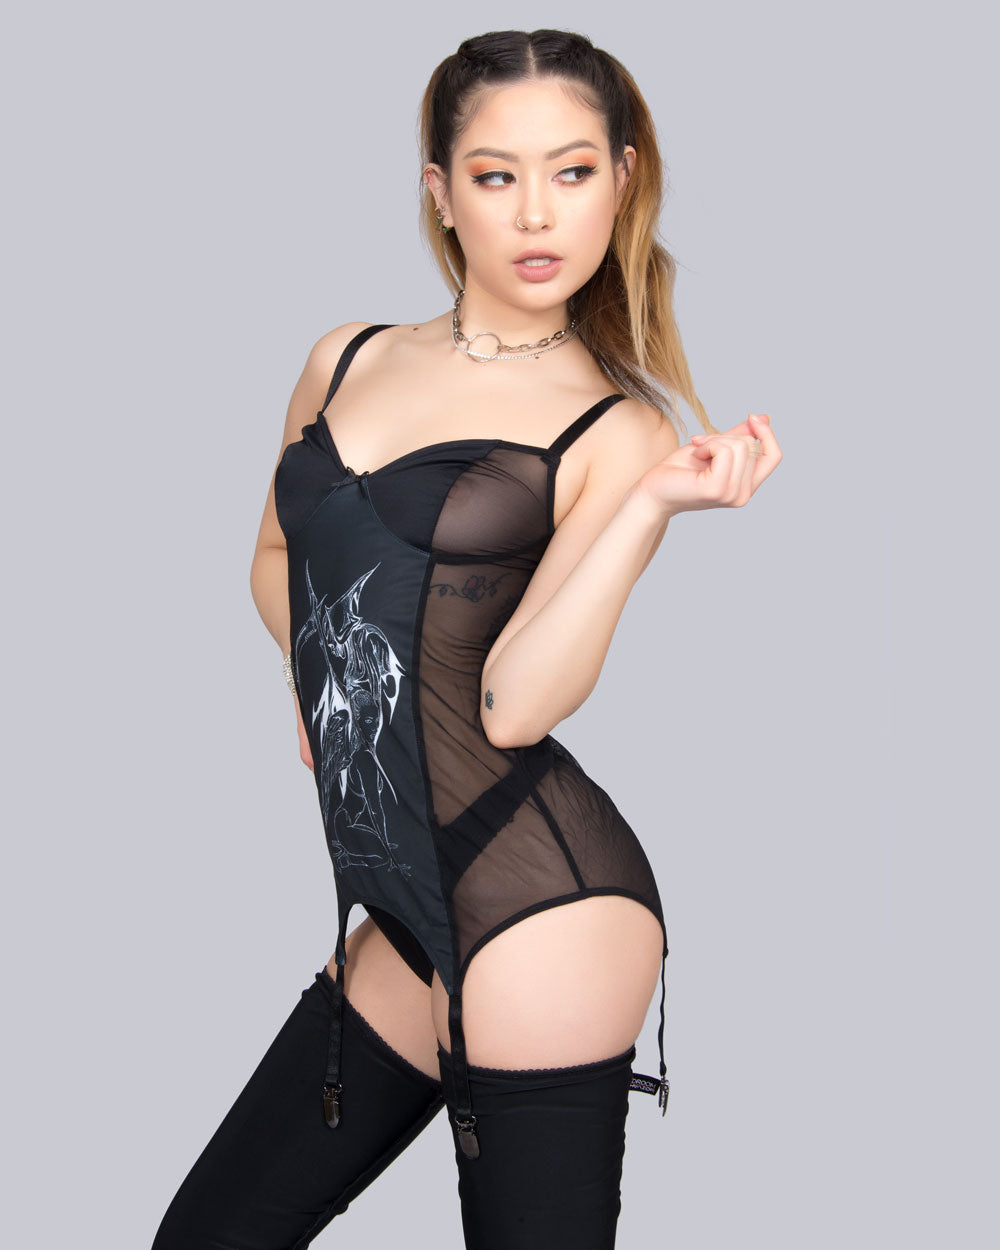 ANTI-VIRAL BY YENTA BLACK GARTER BUSTIER - Eros Mortis